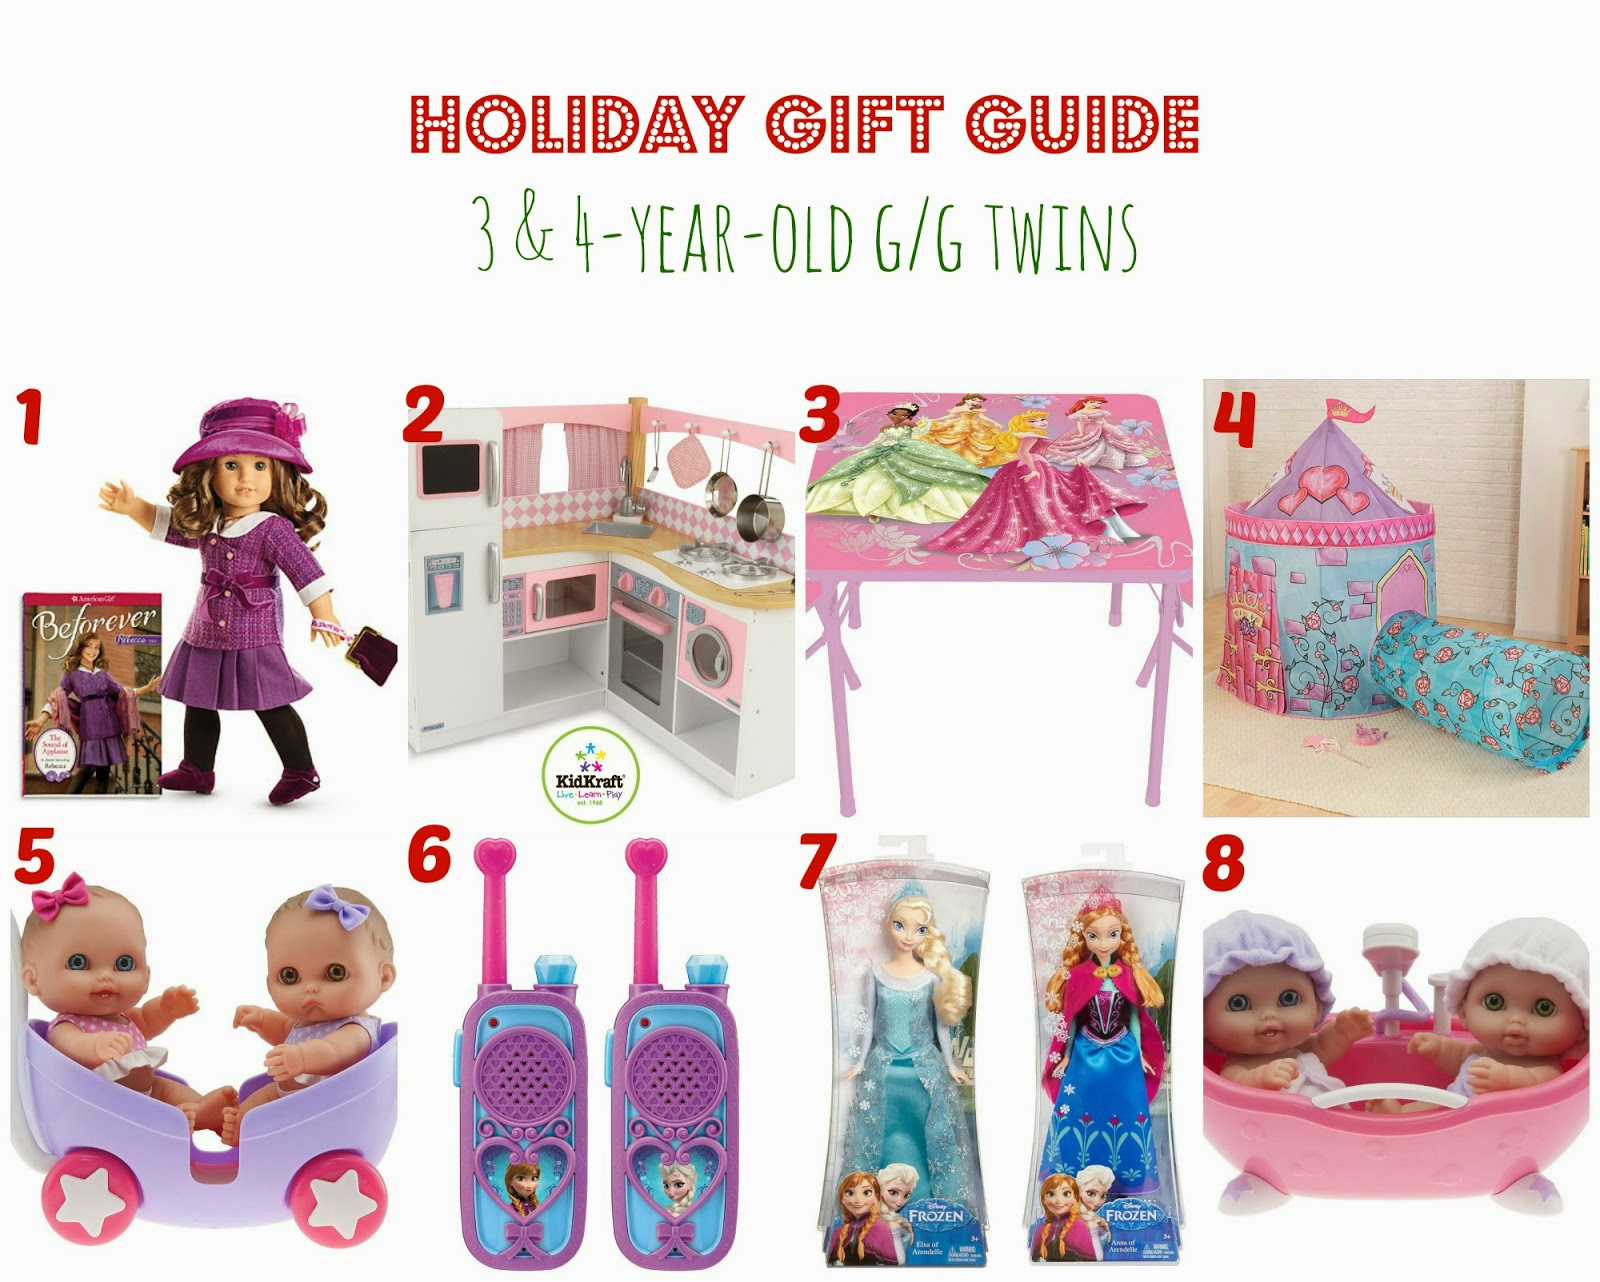 Twin Talk Blog: Holiday Gift Guide: 3 & 4-year-old Twins